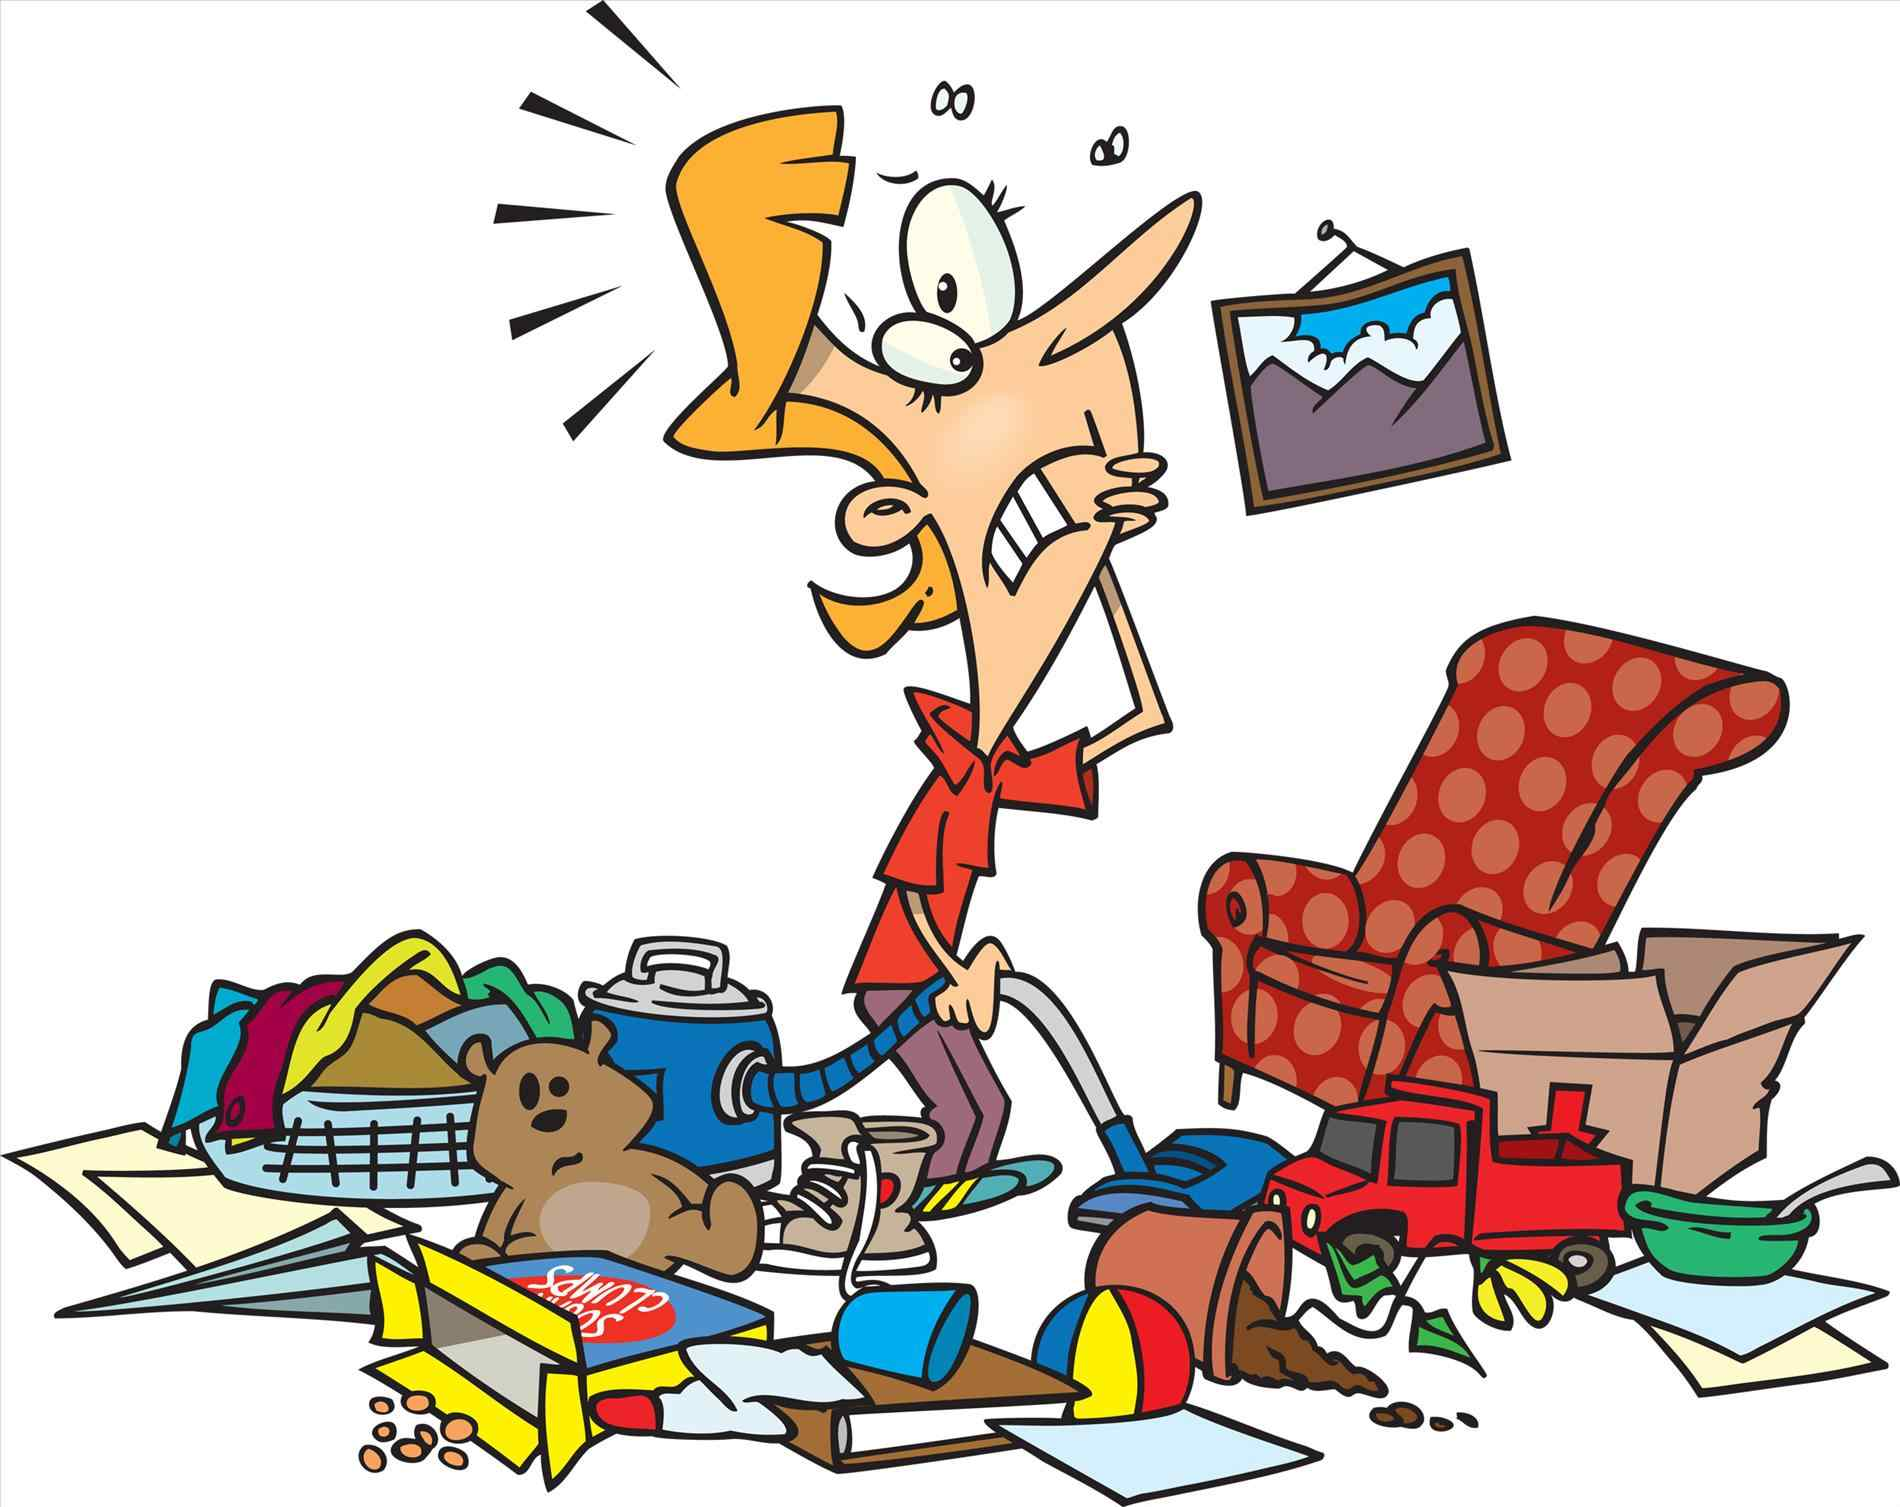 Messy room free download. Closet clipart tidy person